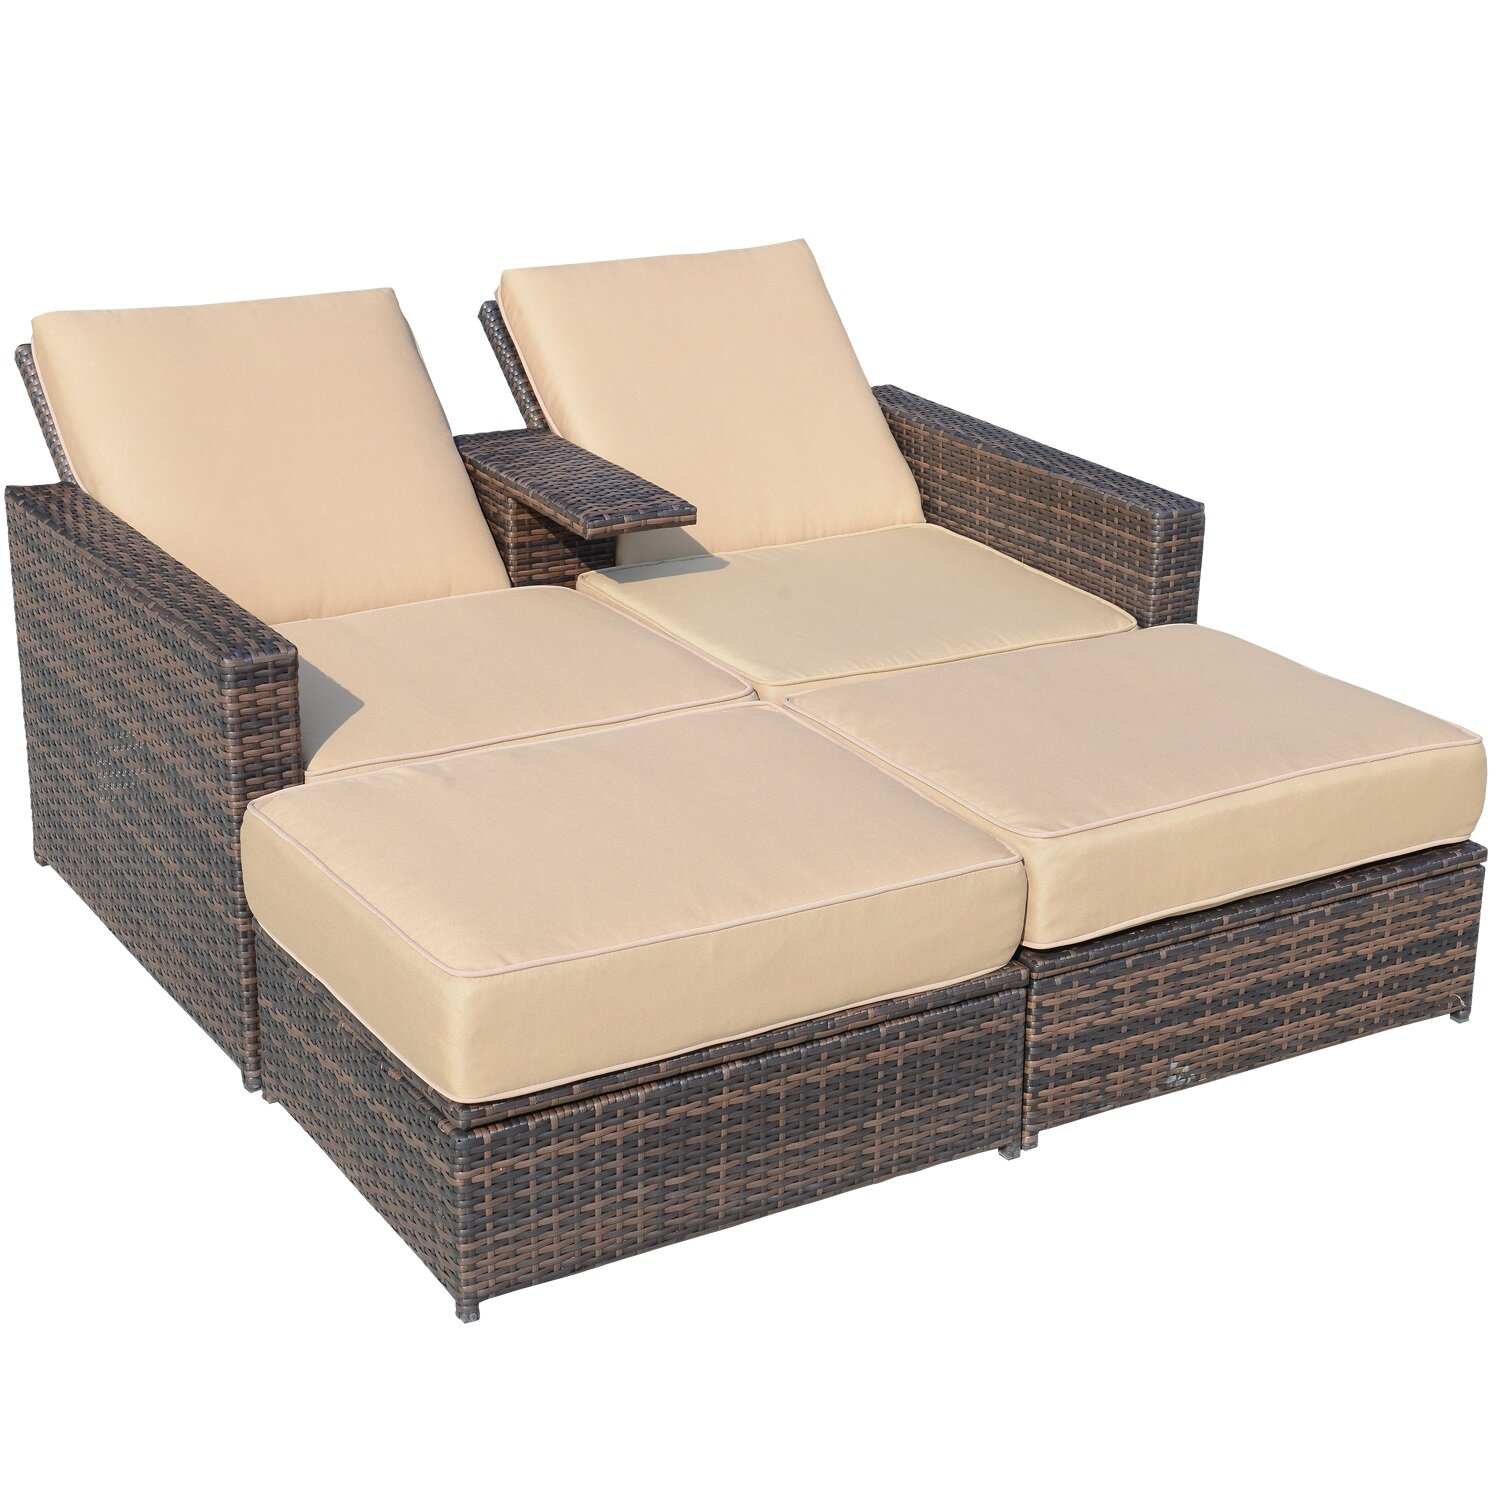 belize grey cushion design outdoor and chaise single patio premiere furniture teak modern hotel quickdry couture product lounger luxury double hospitality